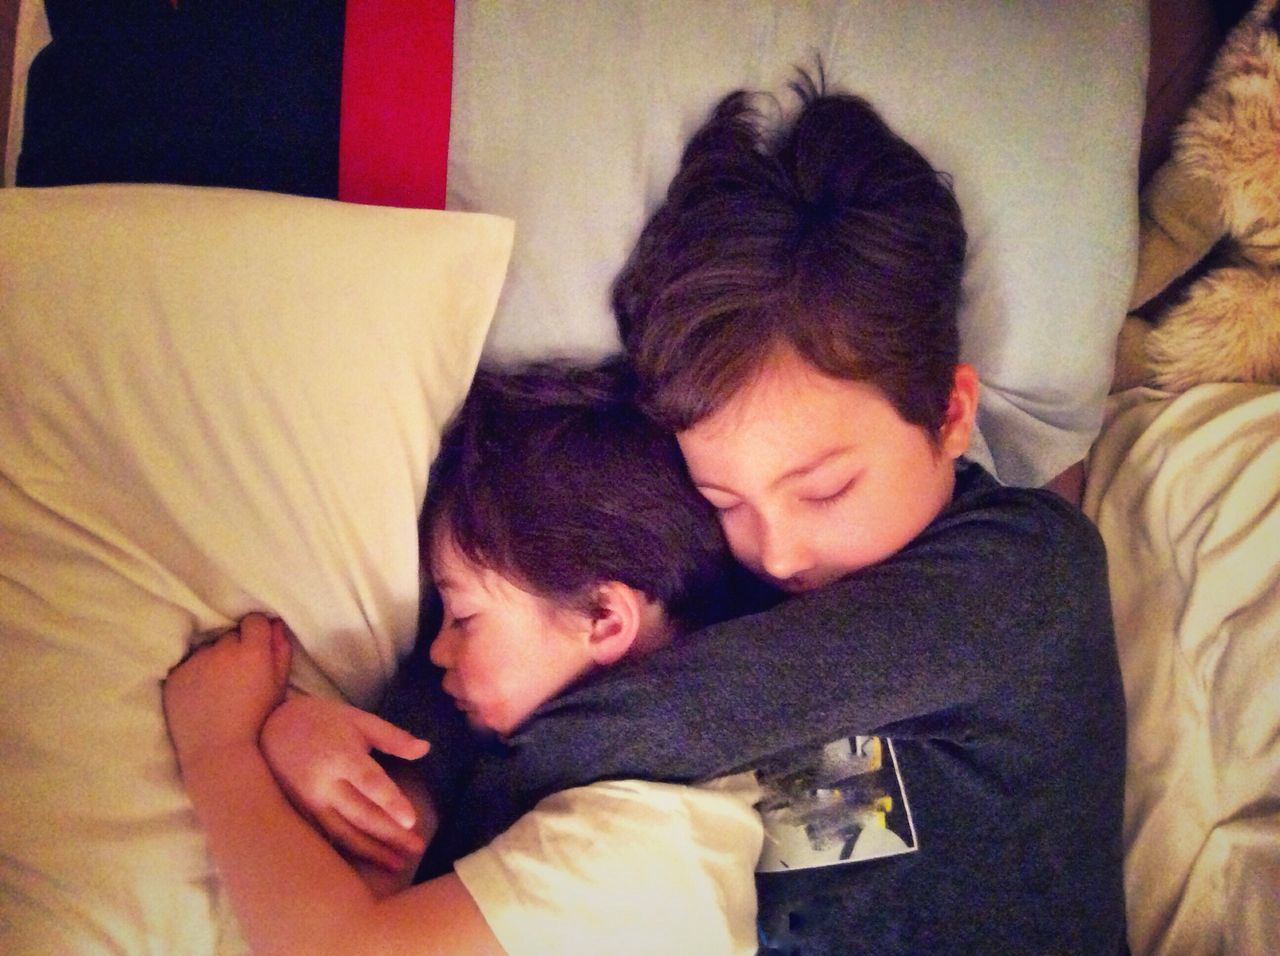 Brothers cuddling in bed. Togetherness Love Two People Bonding Sleeping Real People Lying Down Bed Embracing Relaxation Hugging Brothers Young Children Family Togethernes Asleep Brown Hair Young Cuddle Cuddles Cuddling Hugging